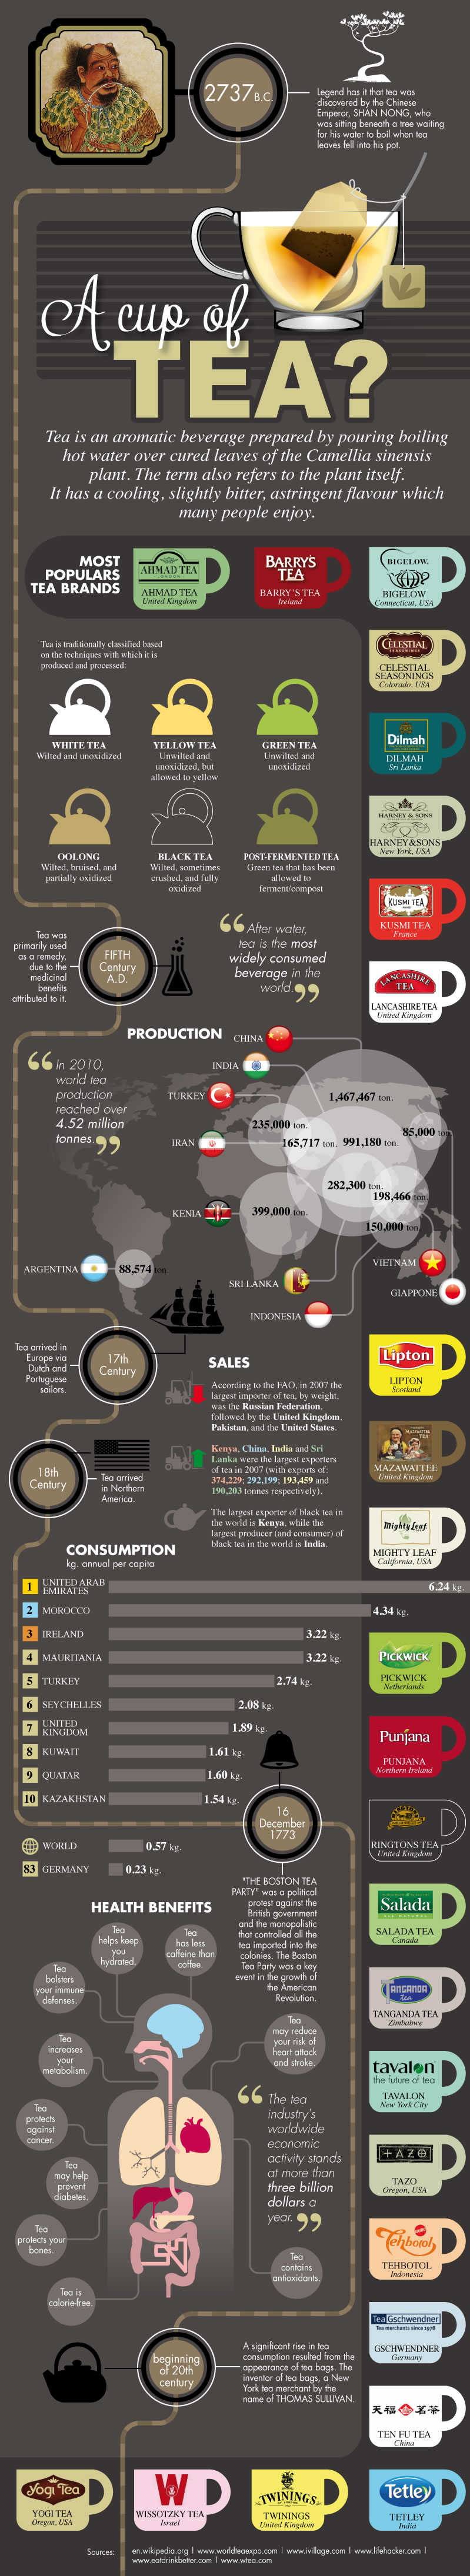 15_cool_infographics_about_tea_170115_12